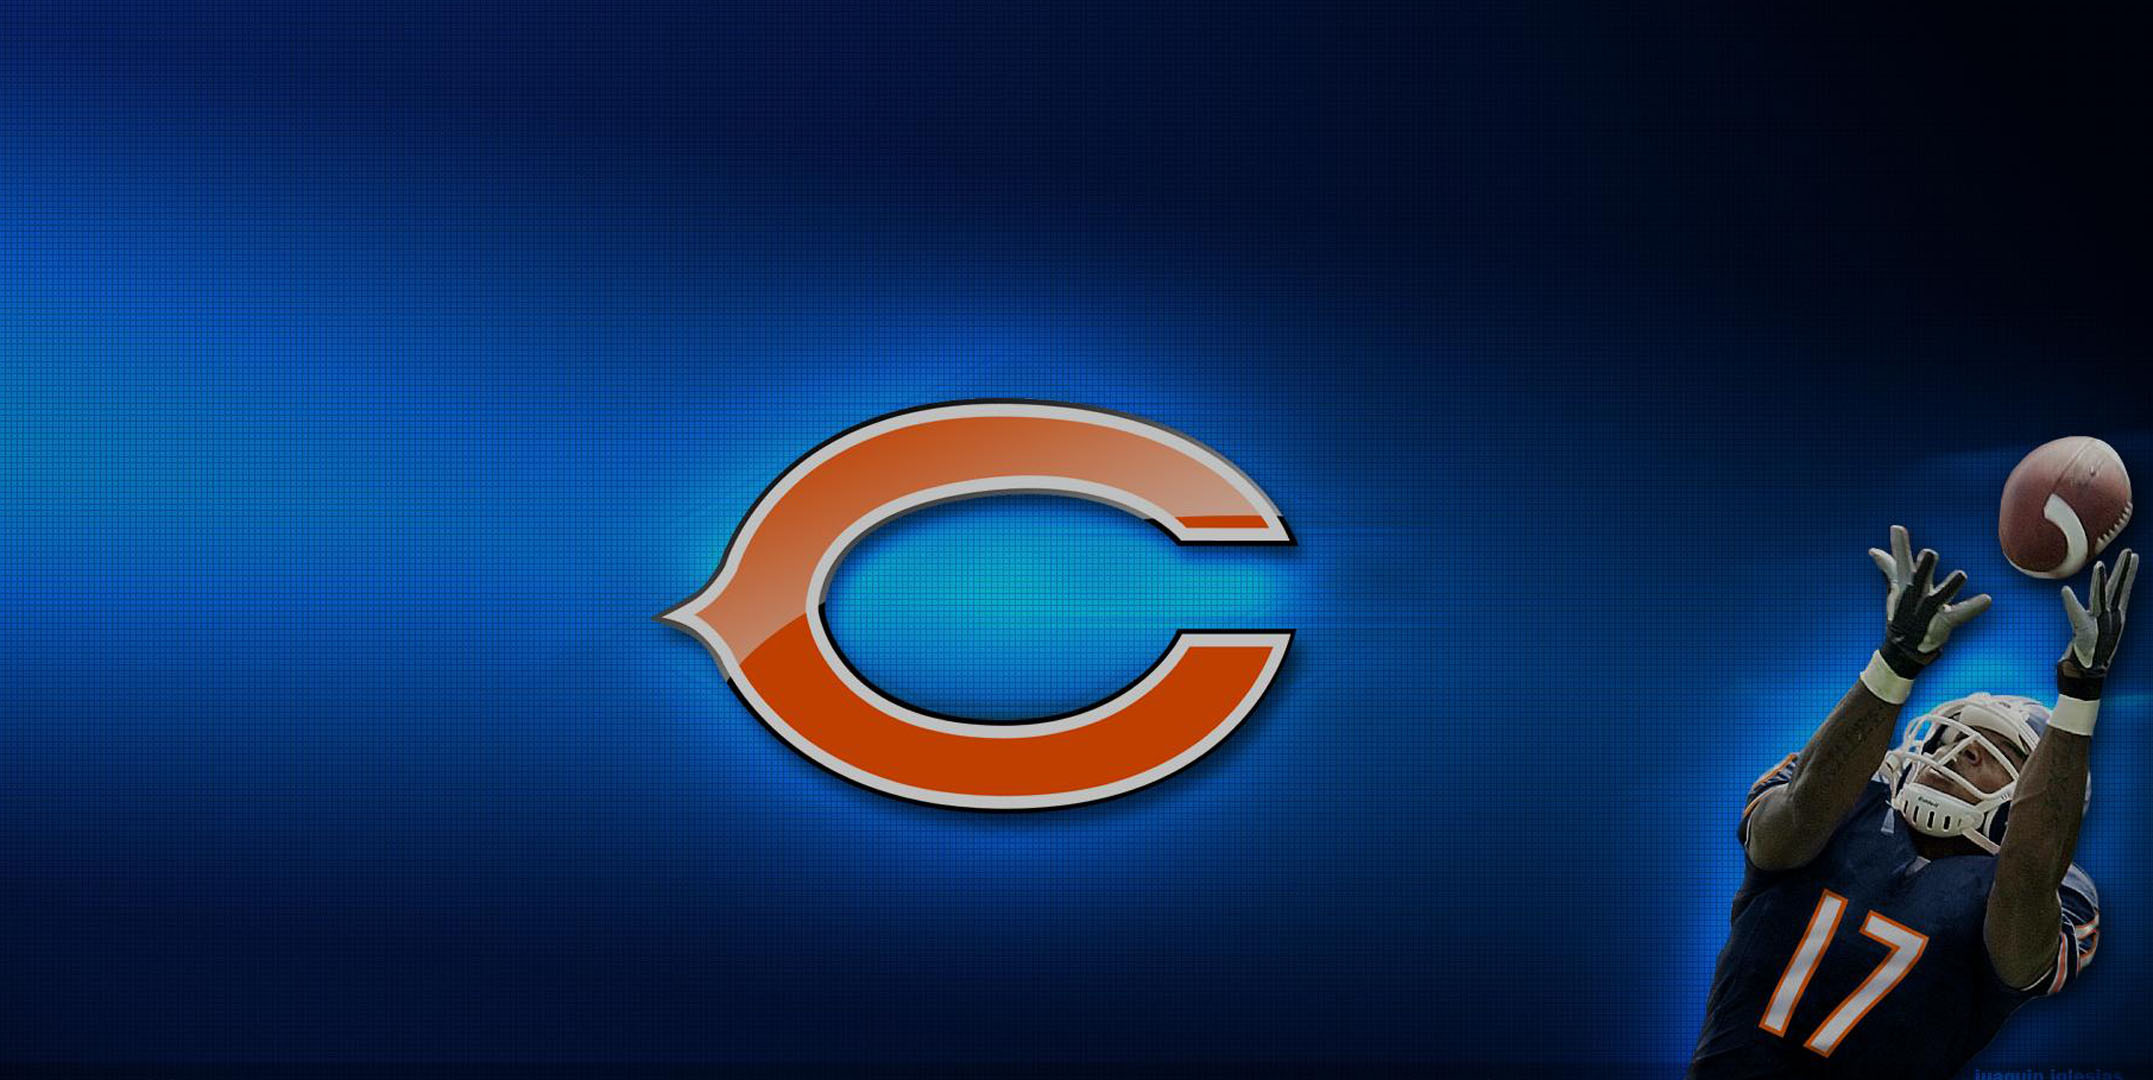 Chicago Bears Wallpapers Pictures to pin 2153x1080